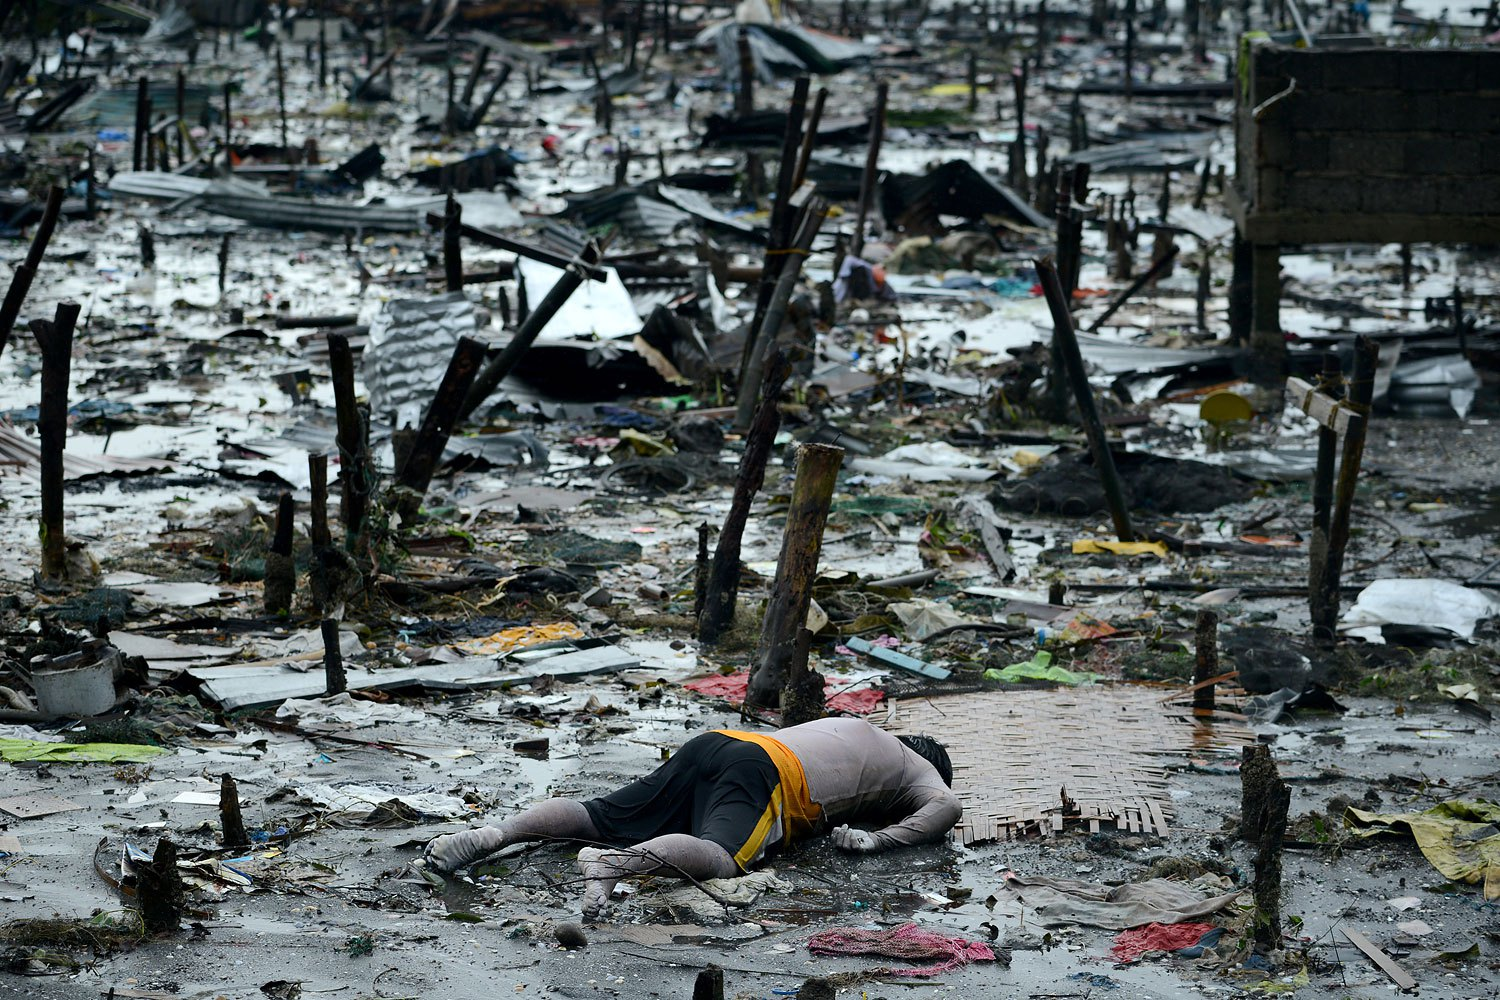 The body of a dead man is seen in Tacloban, in Leyte province, on Nov. 10, 2013, after Supertyphoon Haiyan swept over the Philippines